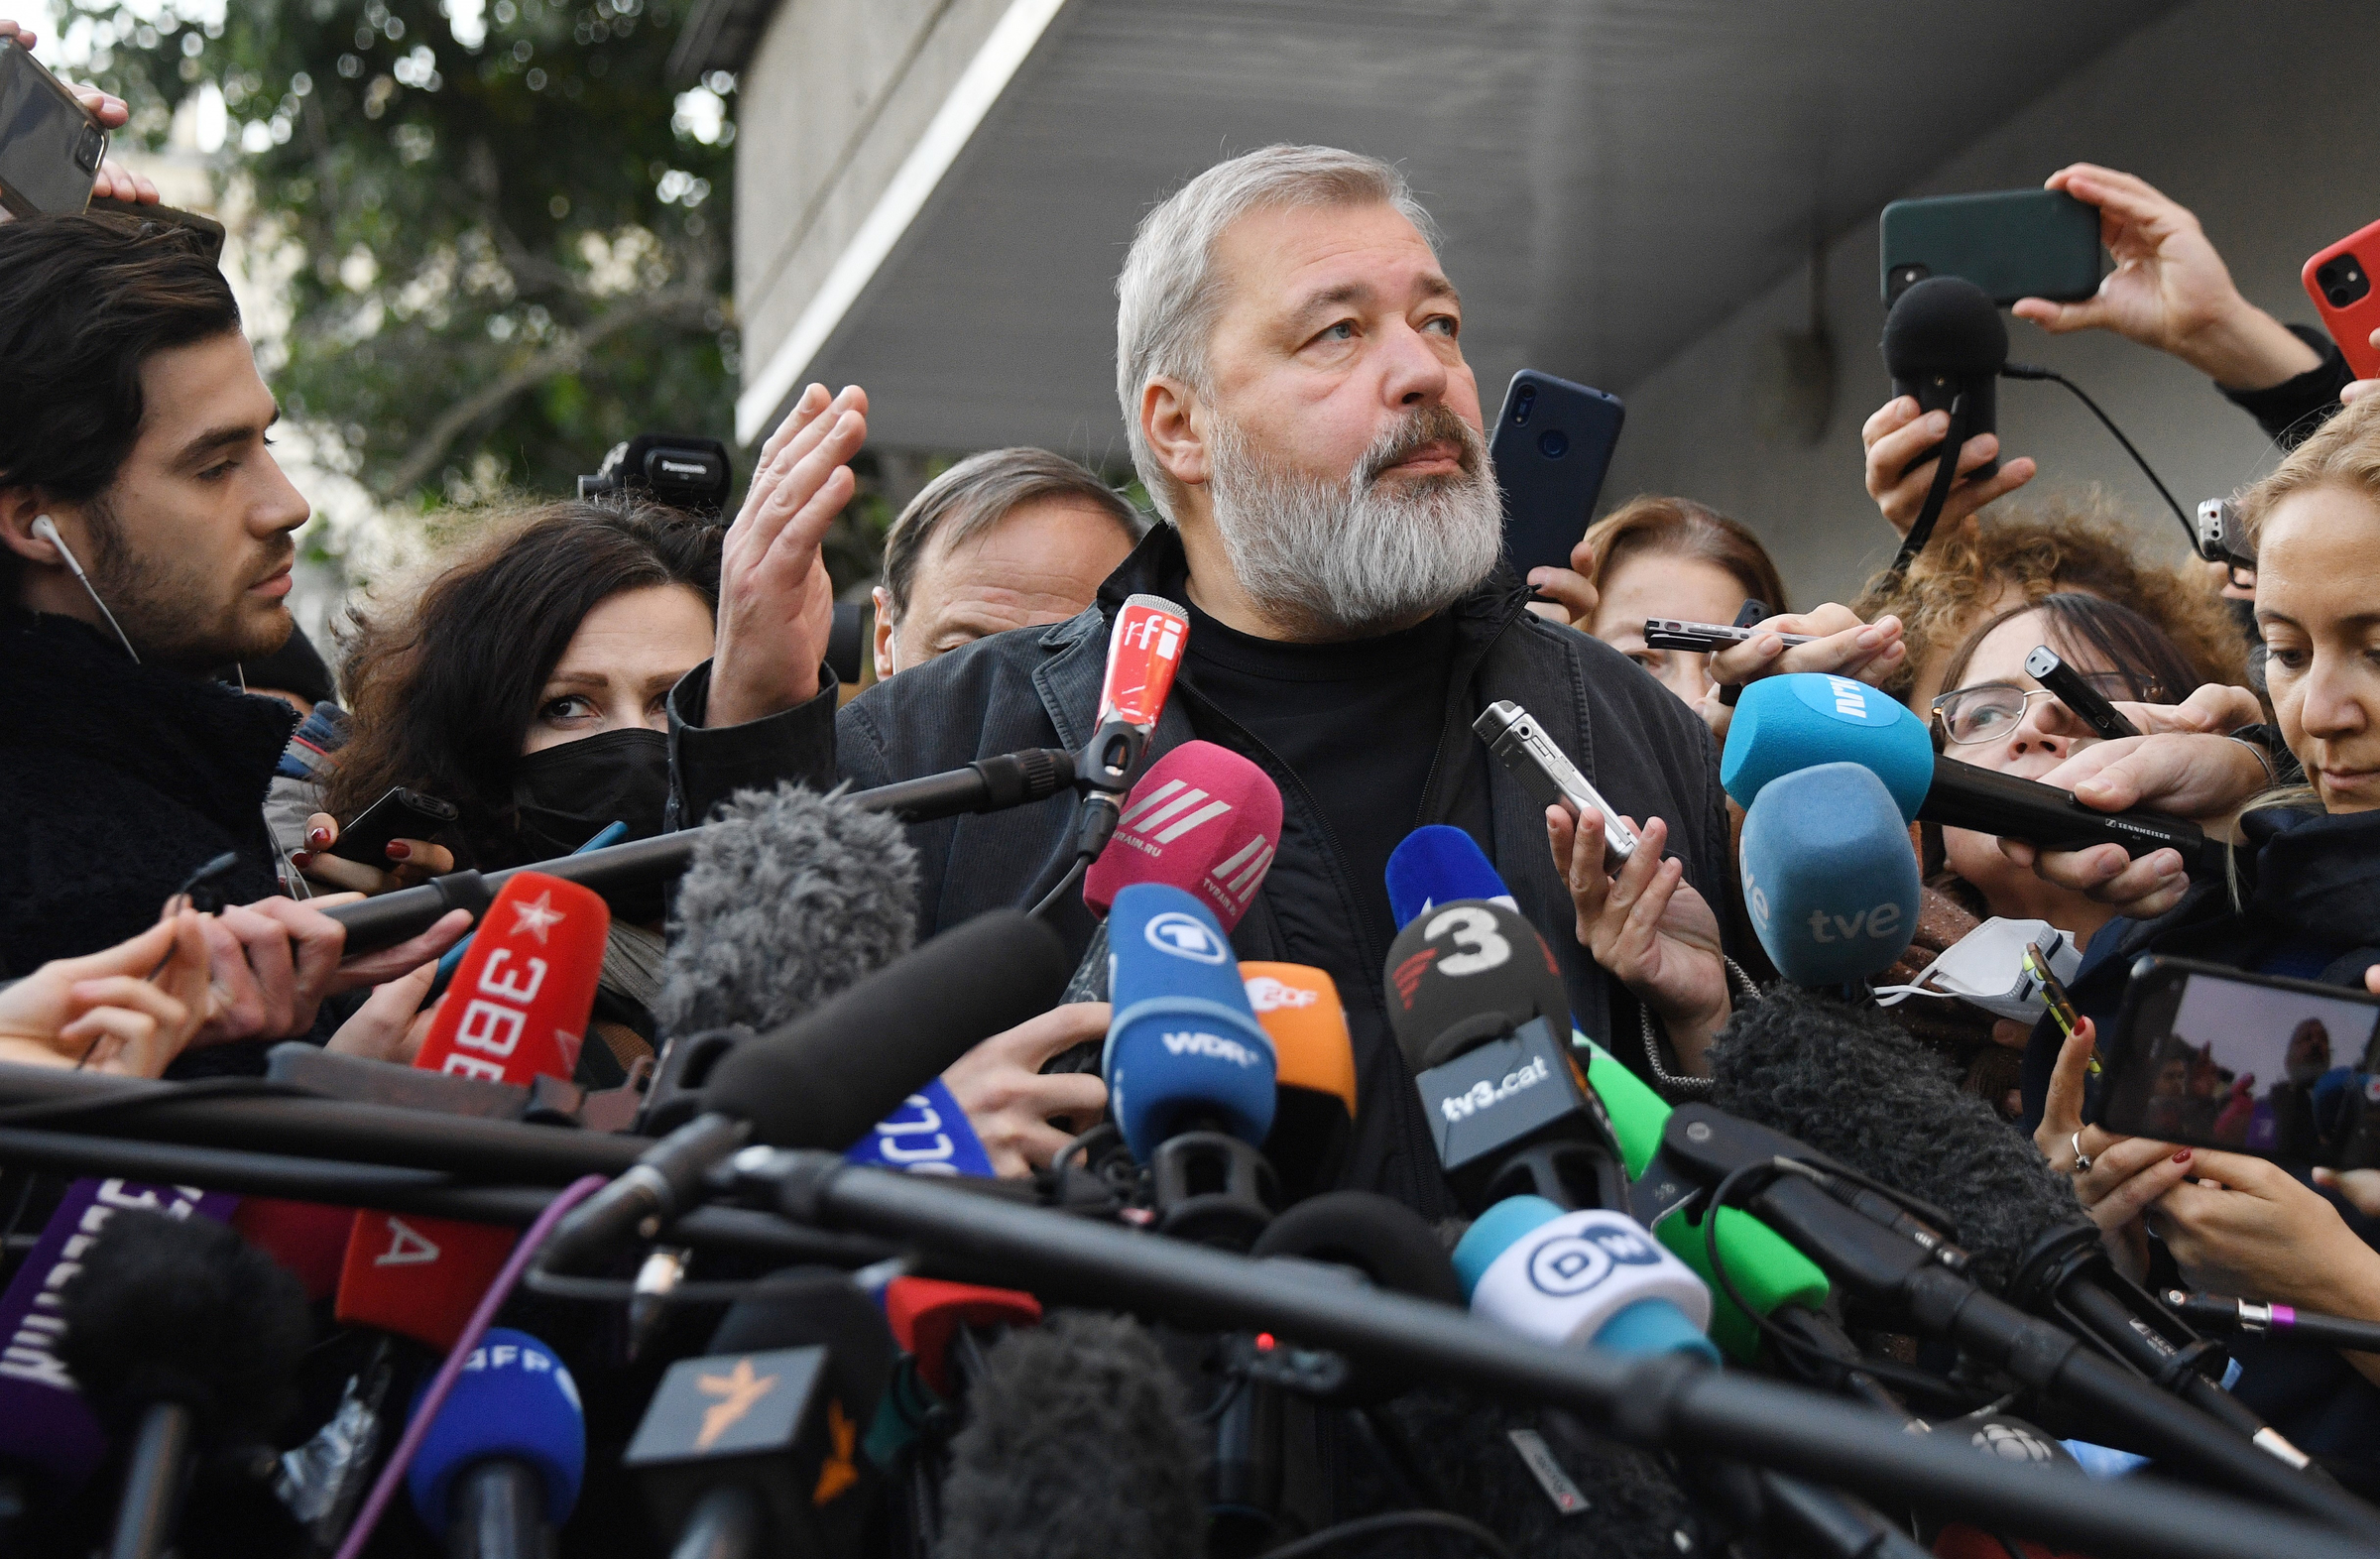 """Dmitry Muratov speaks at a news conference following the announcement of his Nobel Peace Prize win on October 8, 2021 in Moscow. Muratov was one of the founders of the independent Russian newspaper Novaya Gazeta, which the Nobel committee called """"the most independent newspaper in Russia today, with a fundamentally critical attitude towards power."""""""